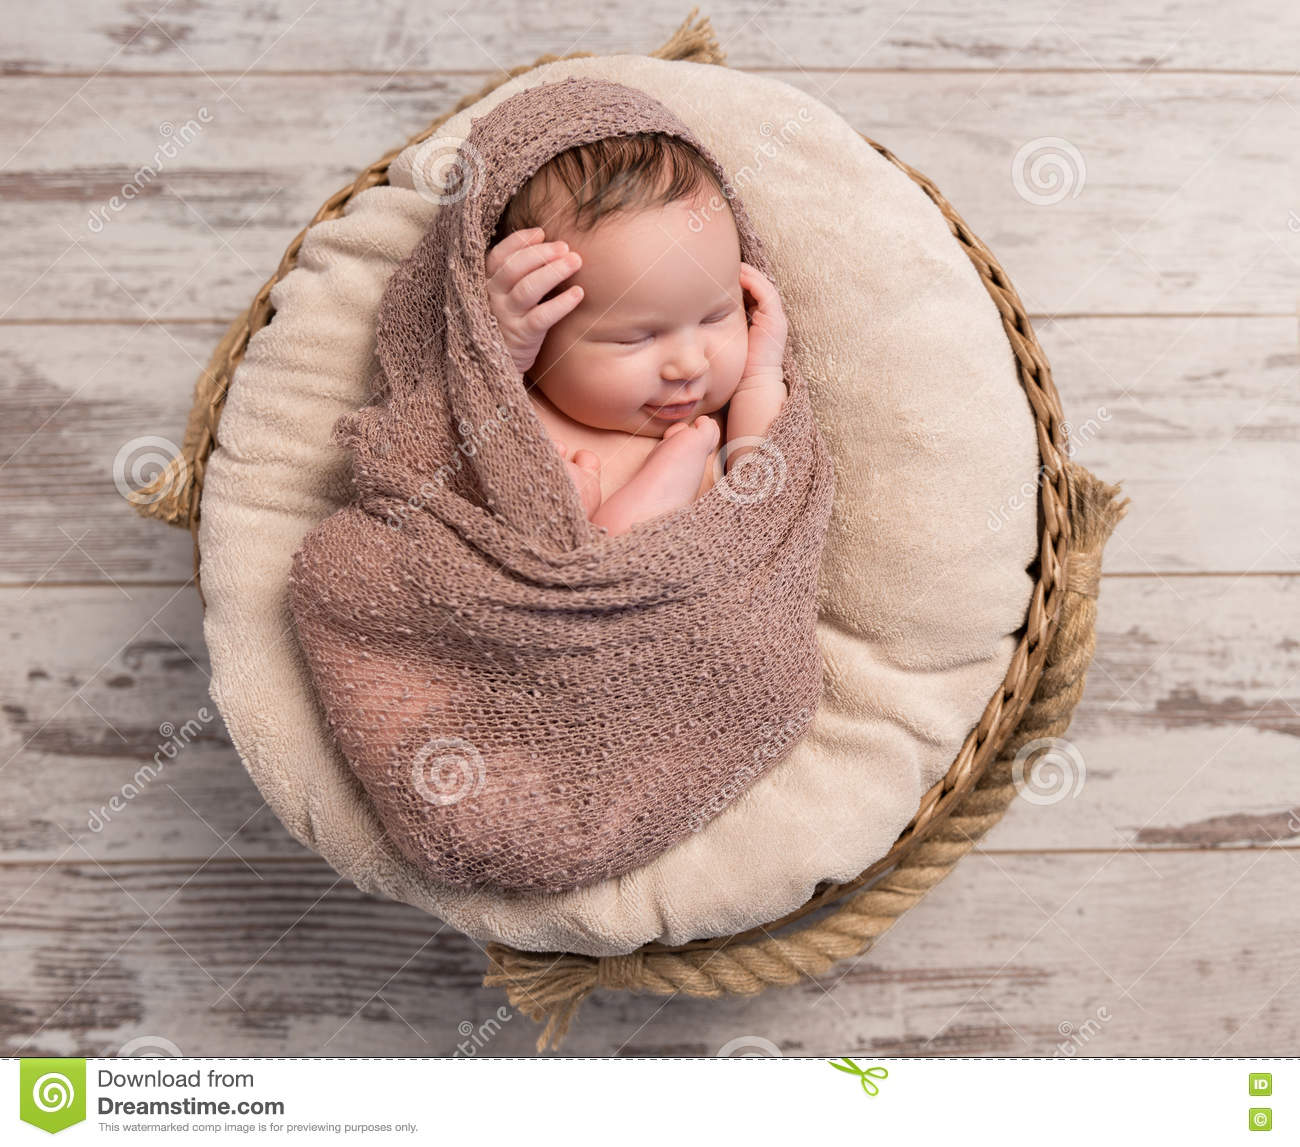 435c37ce1 Wrapped Sleepy Baby With Folded Legs And Hands On Head Stock Photo ...